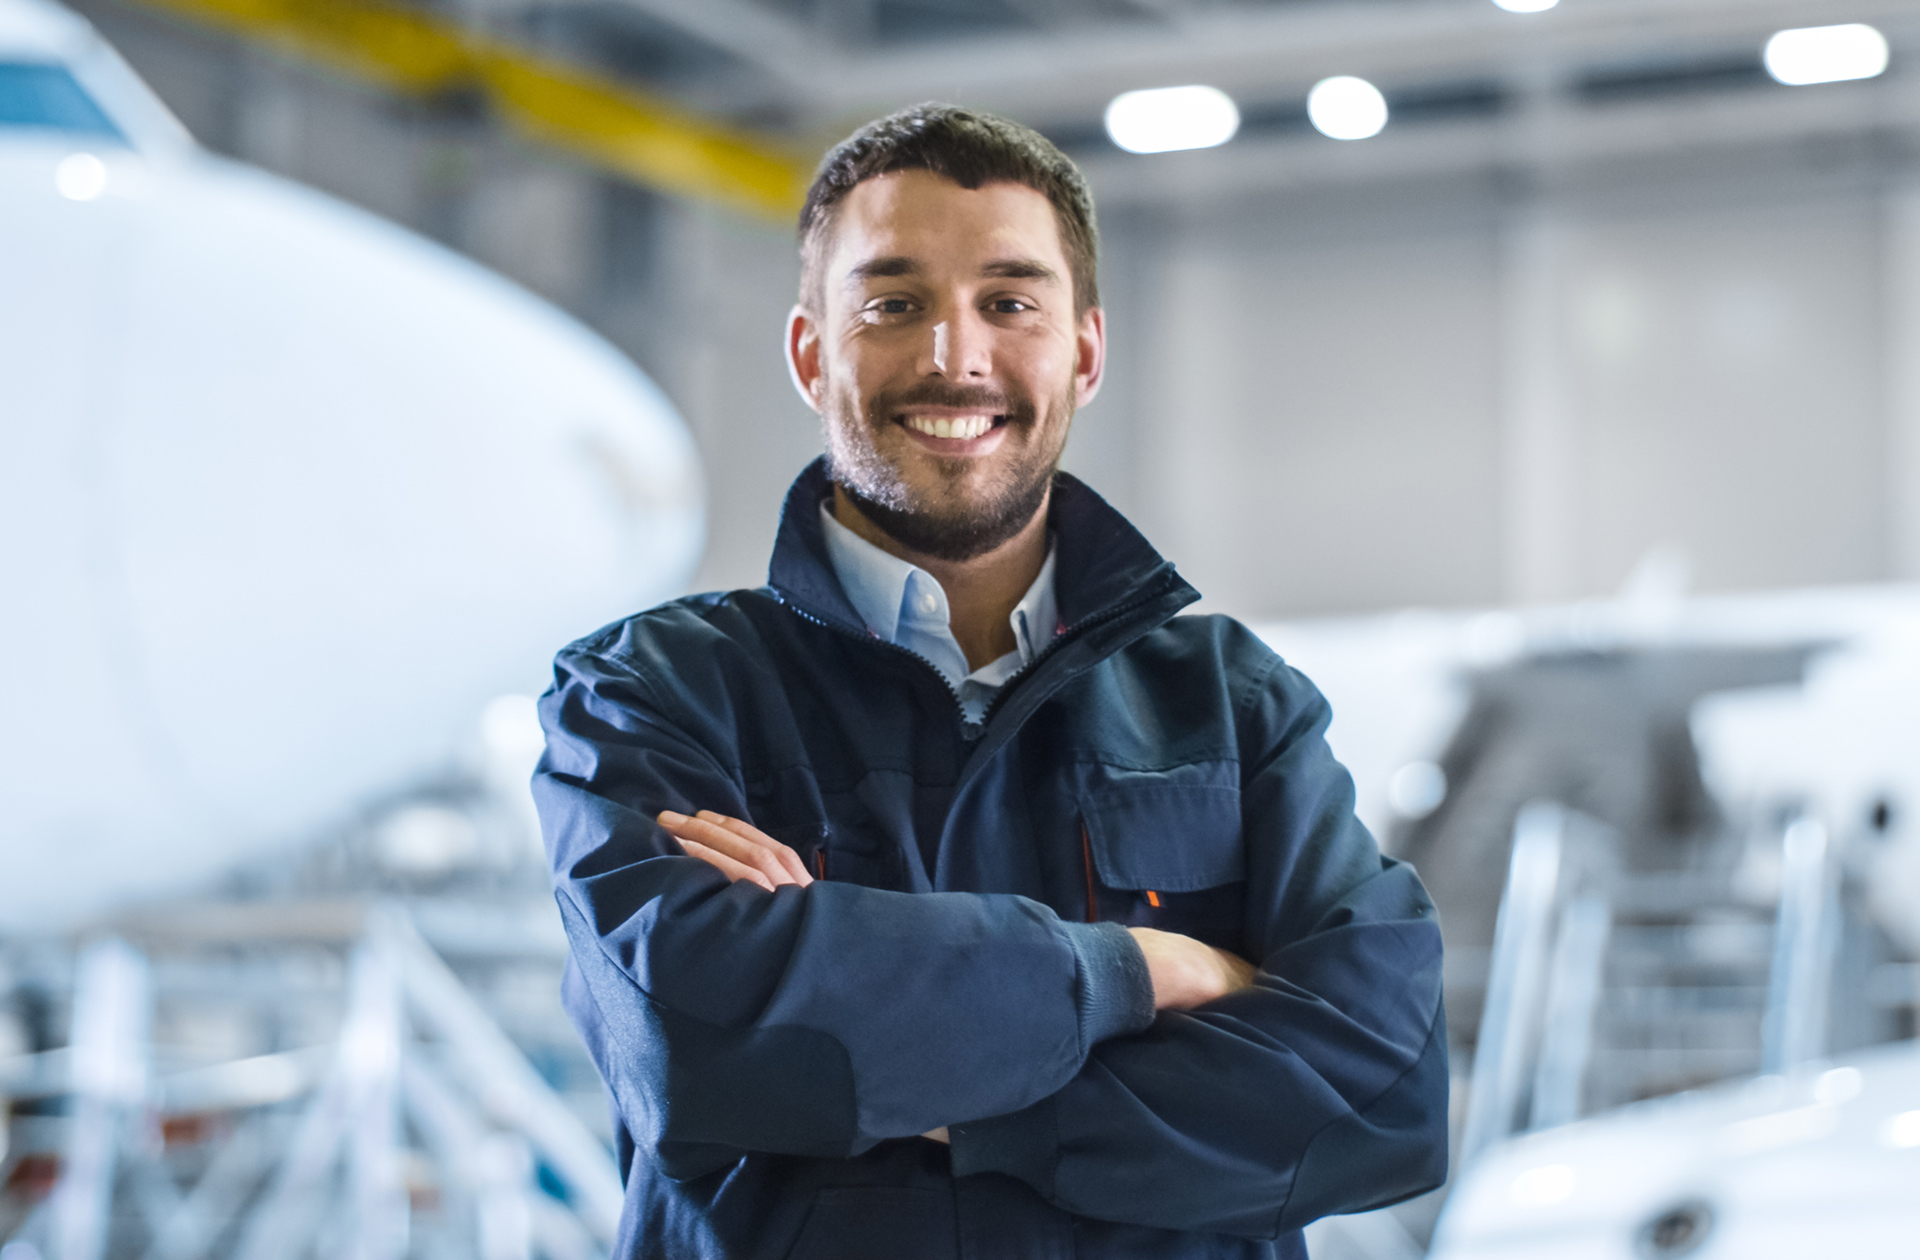 Business Owner and Aircraft in Maintenance Hangar